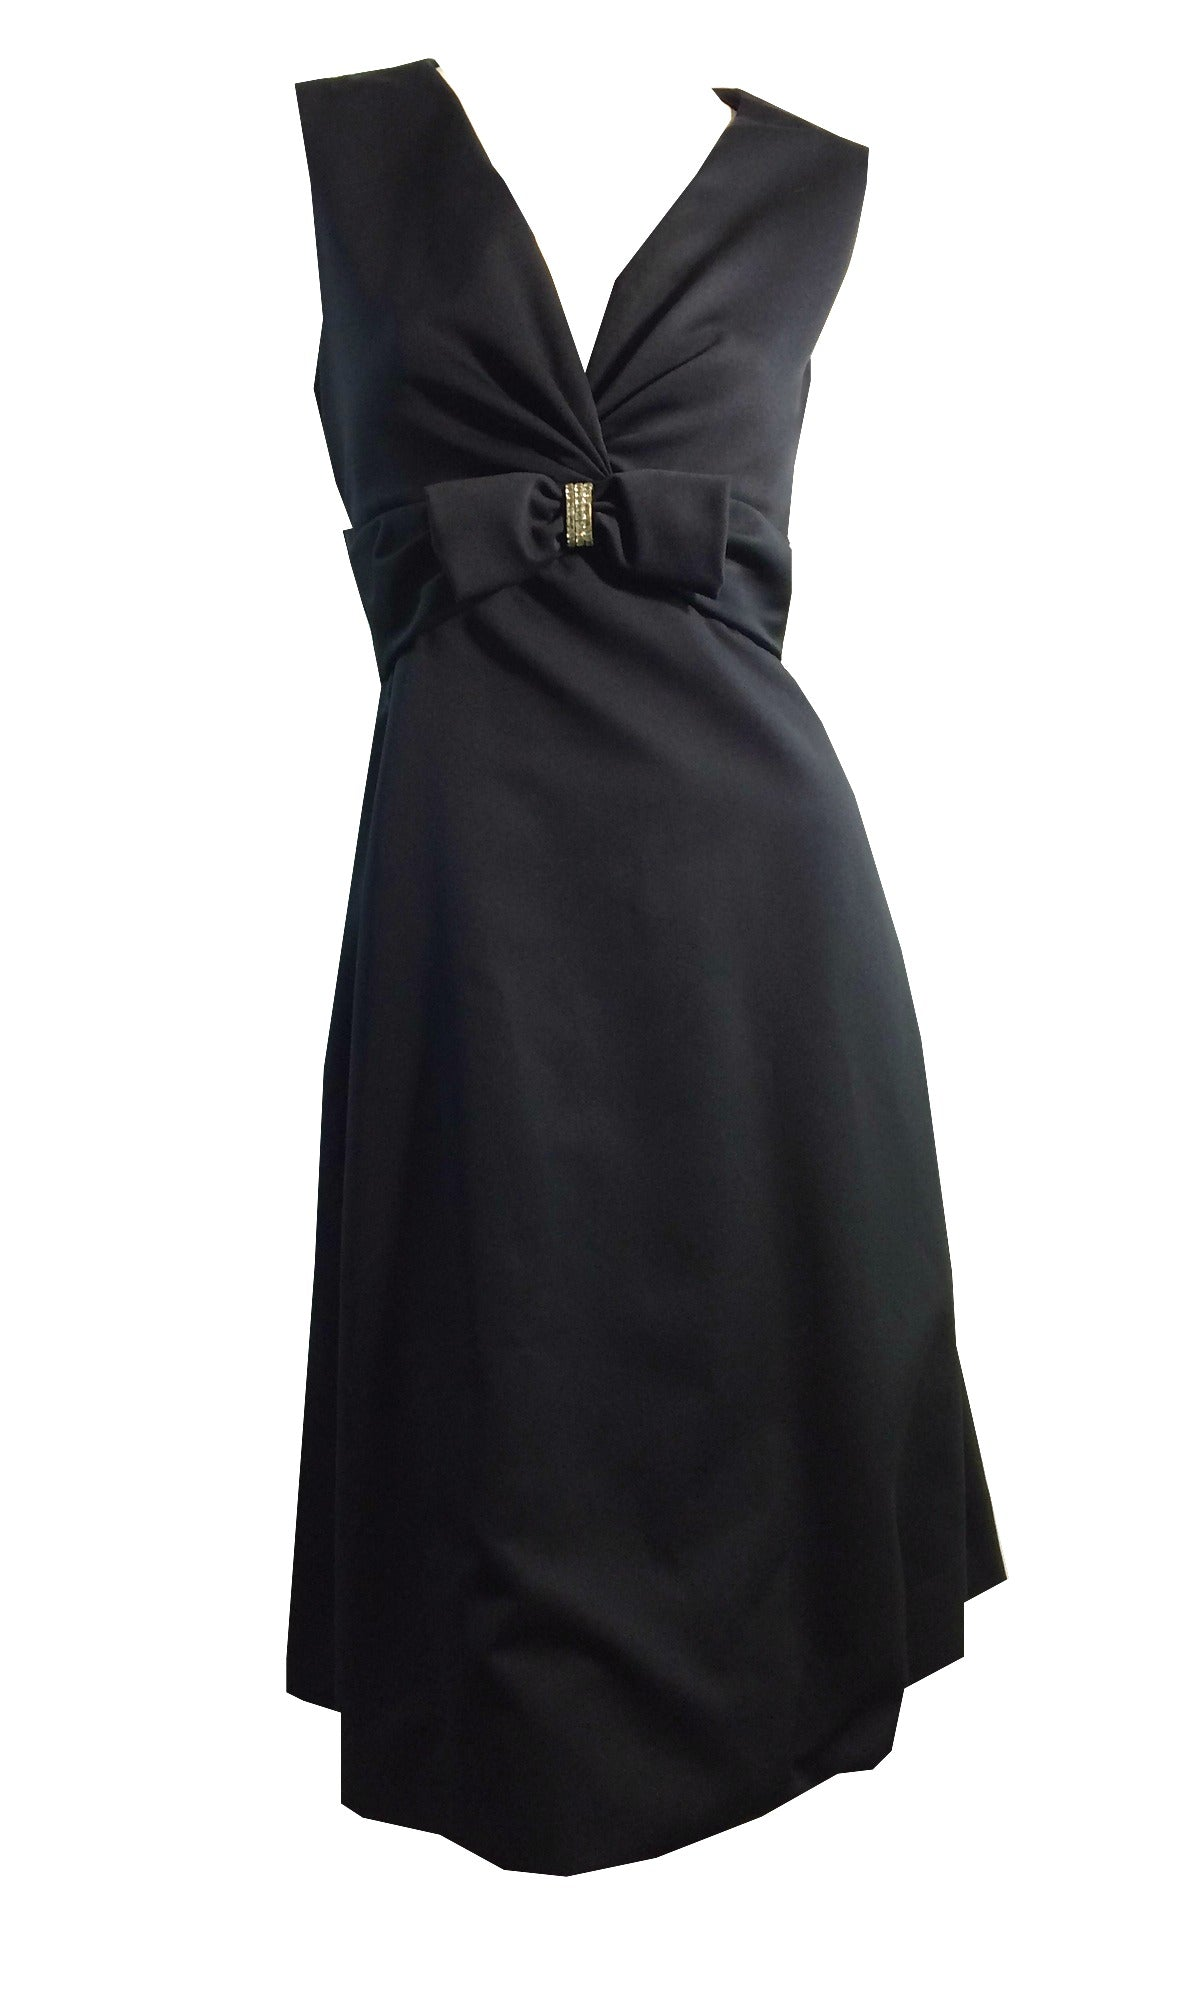 Black Bow and Rhinestone Trimmed Cocktail Dress circa 1960s